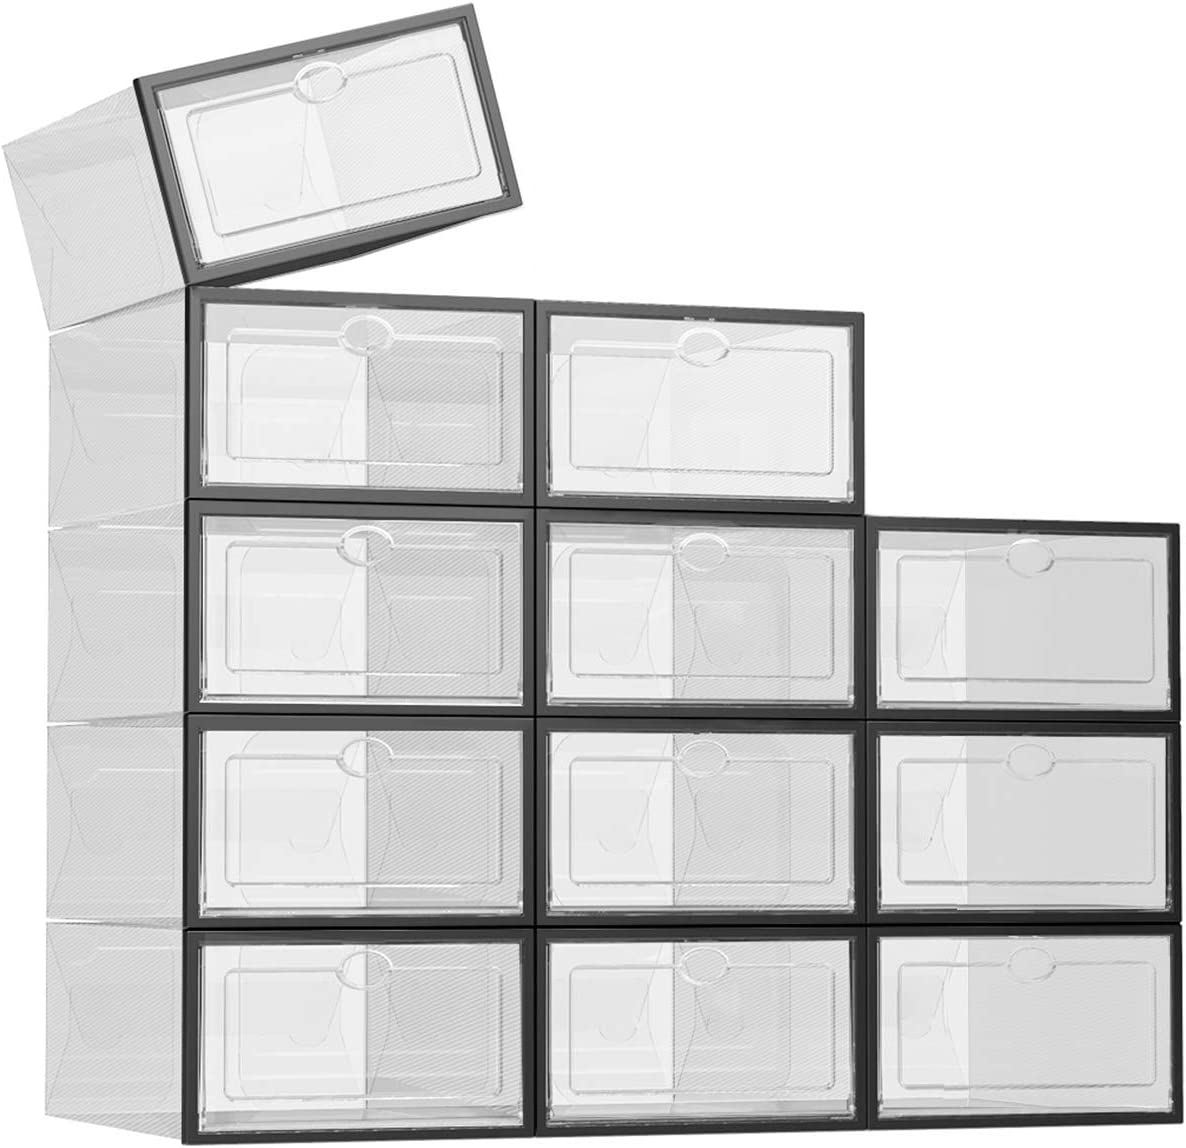 SEE SPRING 12 Pack Shoe Storage Box Shoe Box Clear Plastic Stackable Drop Front Shoe Organizer Space Saving Foldable Shoe Container Bin Fit up to US Size 9 (Black)